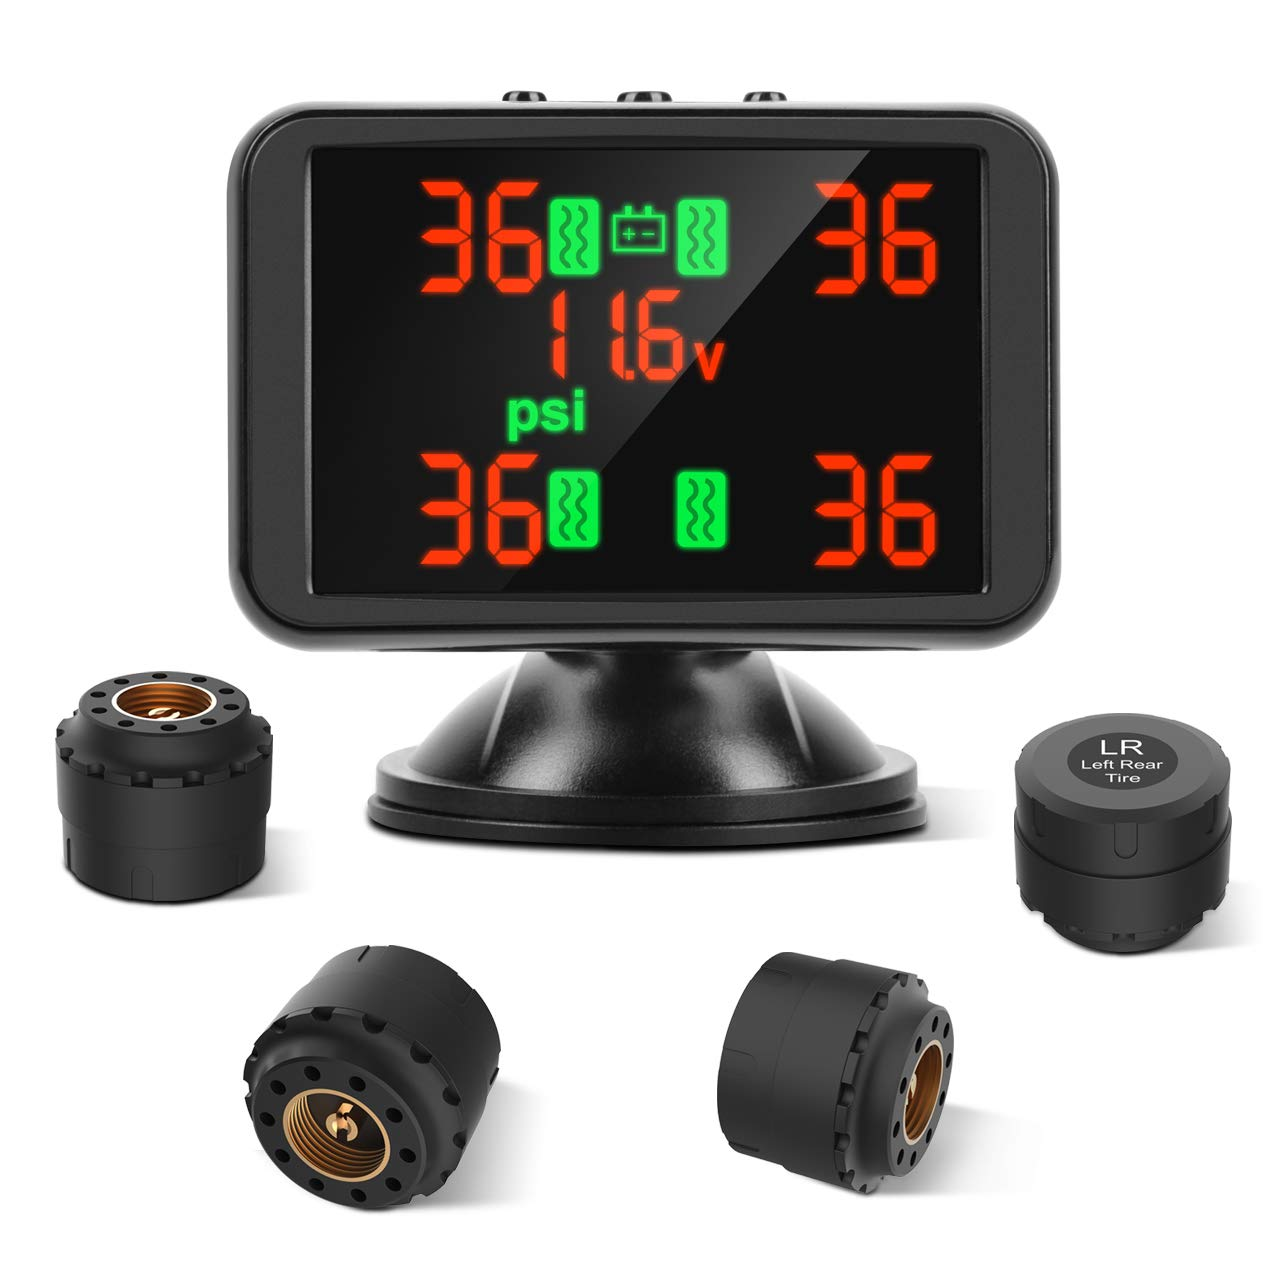 Tymate TPMS Wireless Tire Pressure Monitoring System, 3.7inch LCD Screen Real-time Displays 4 Tires' Pressure and Temperature, 4pcs External Sensors (0-8.0 BAR/0-116 PSI), Real-time Alarm Function by Tymate